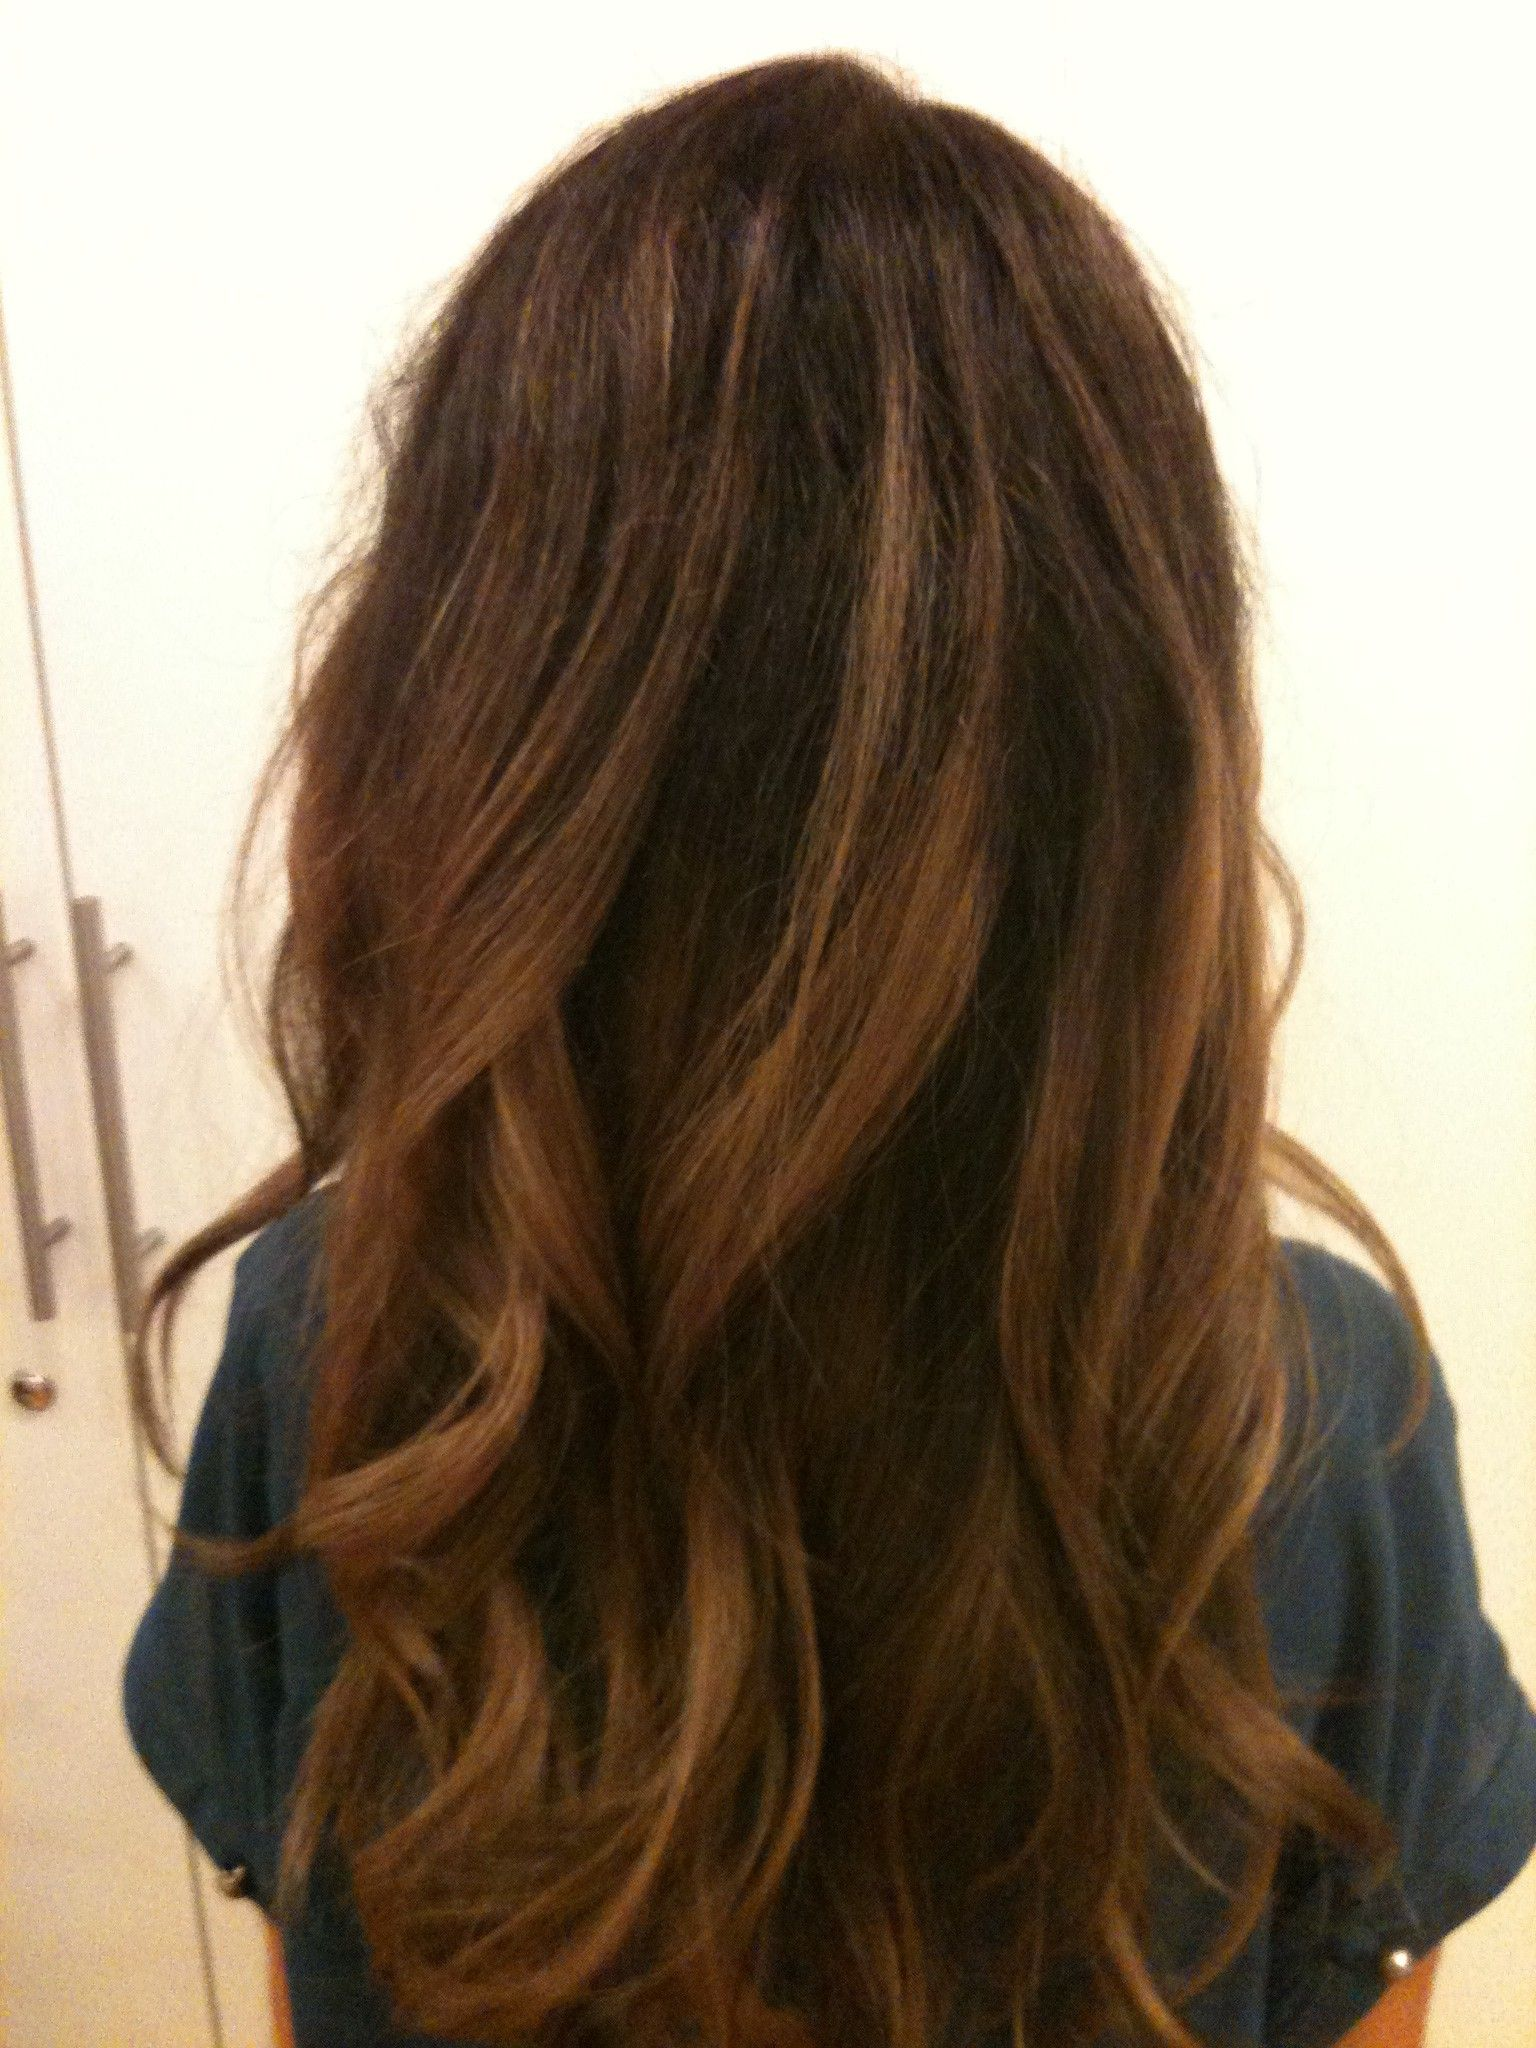 To acquire Just not ombre hair anymore picture trends